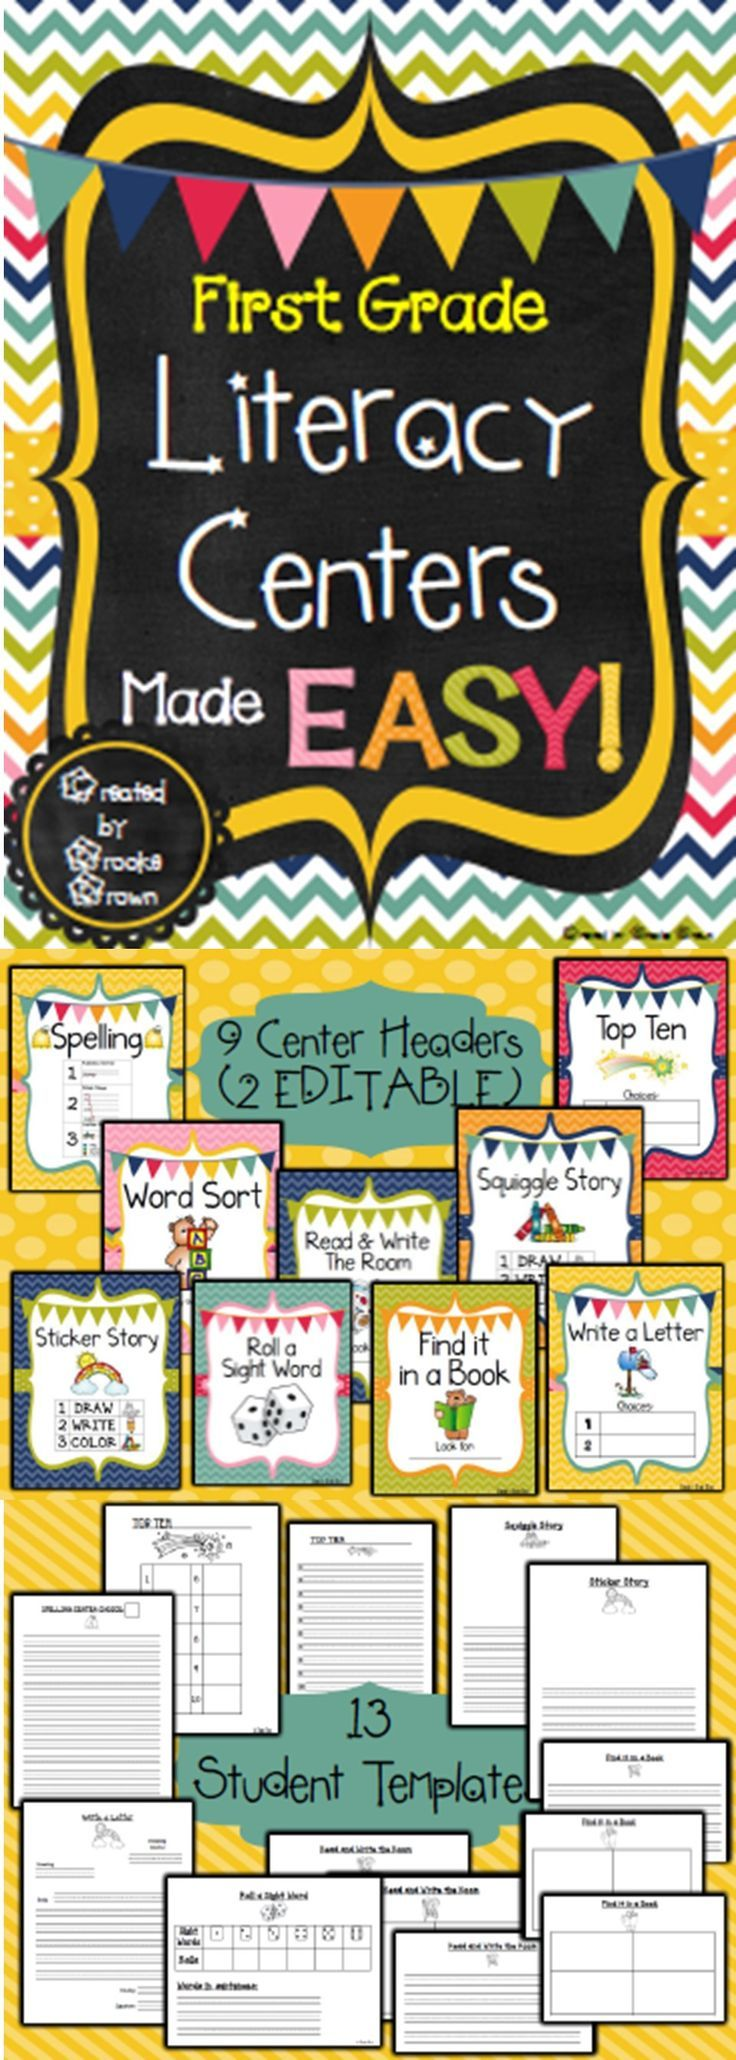 *NEW DESIGN!* First Grade Literacy Centers Made EASY!